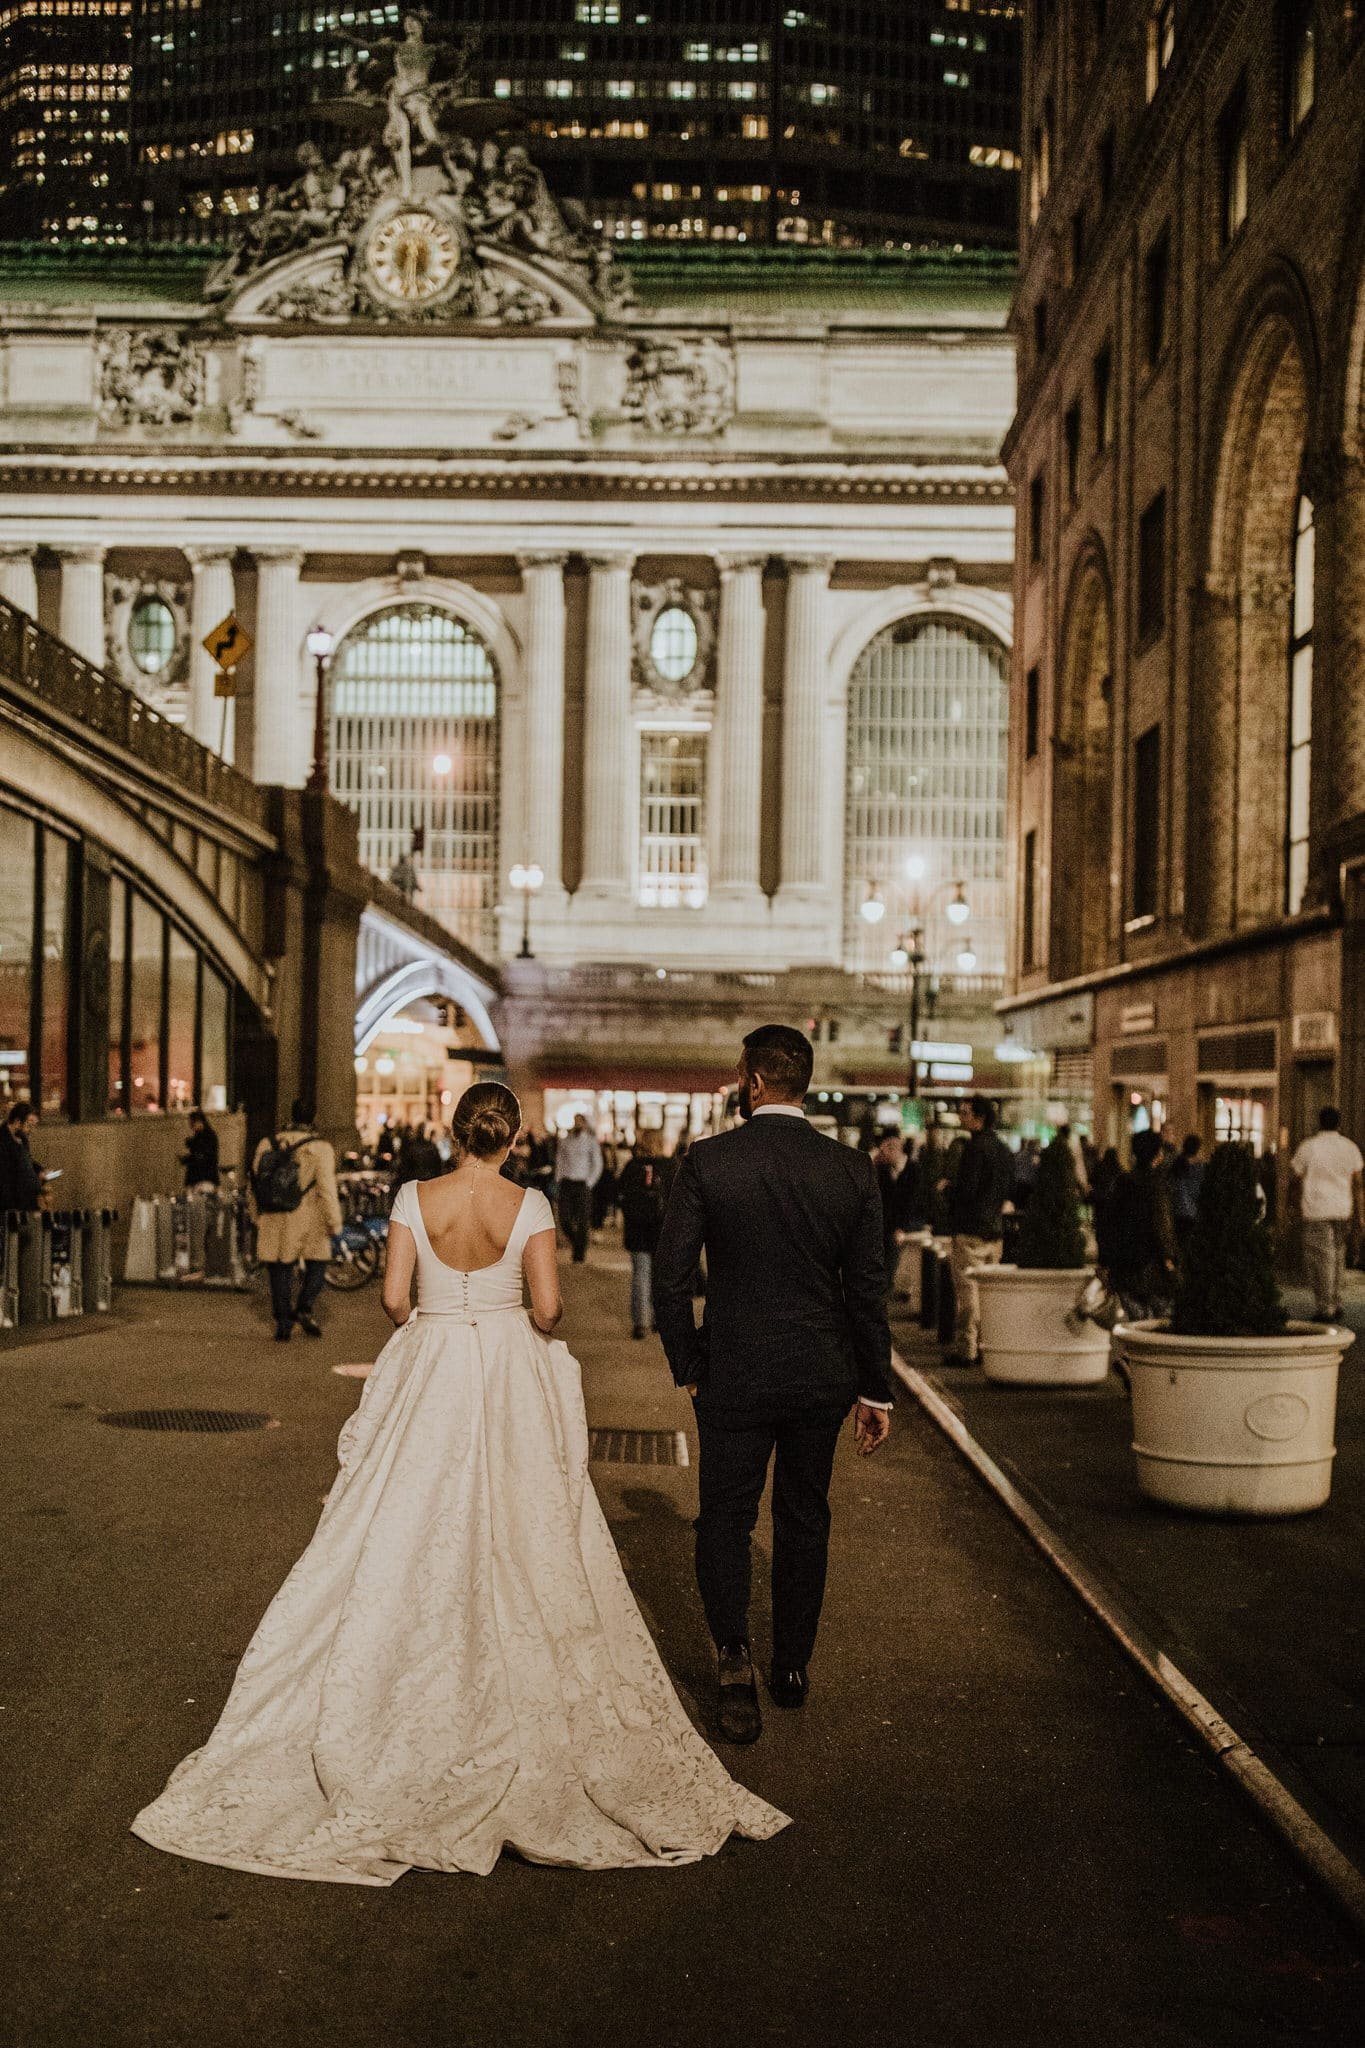 The bride and groom walk towards New York's Central Station. Wedding Photographer Brent Calis.